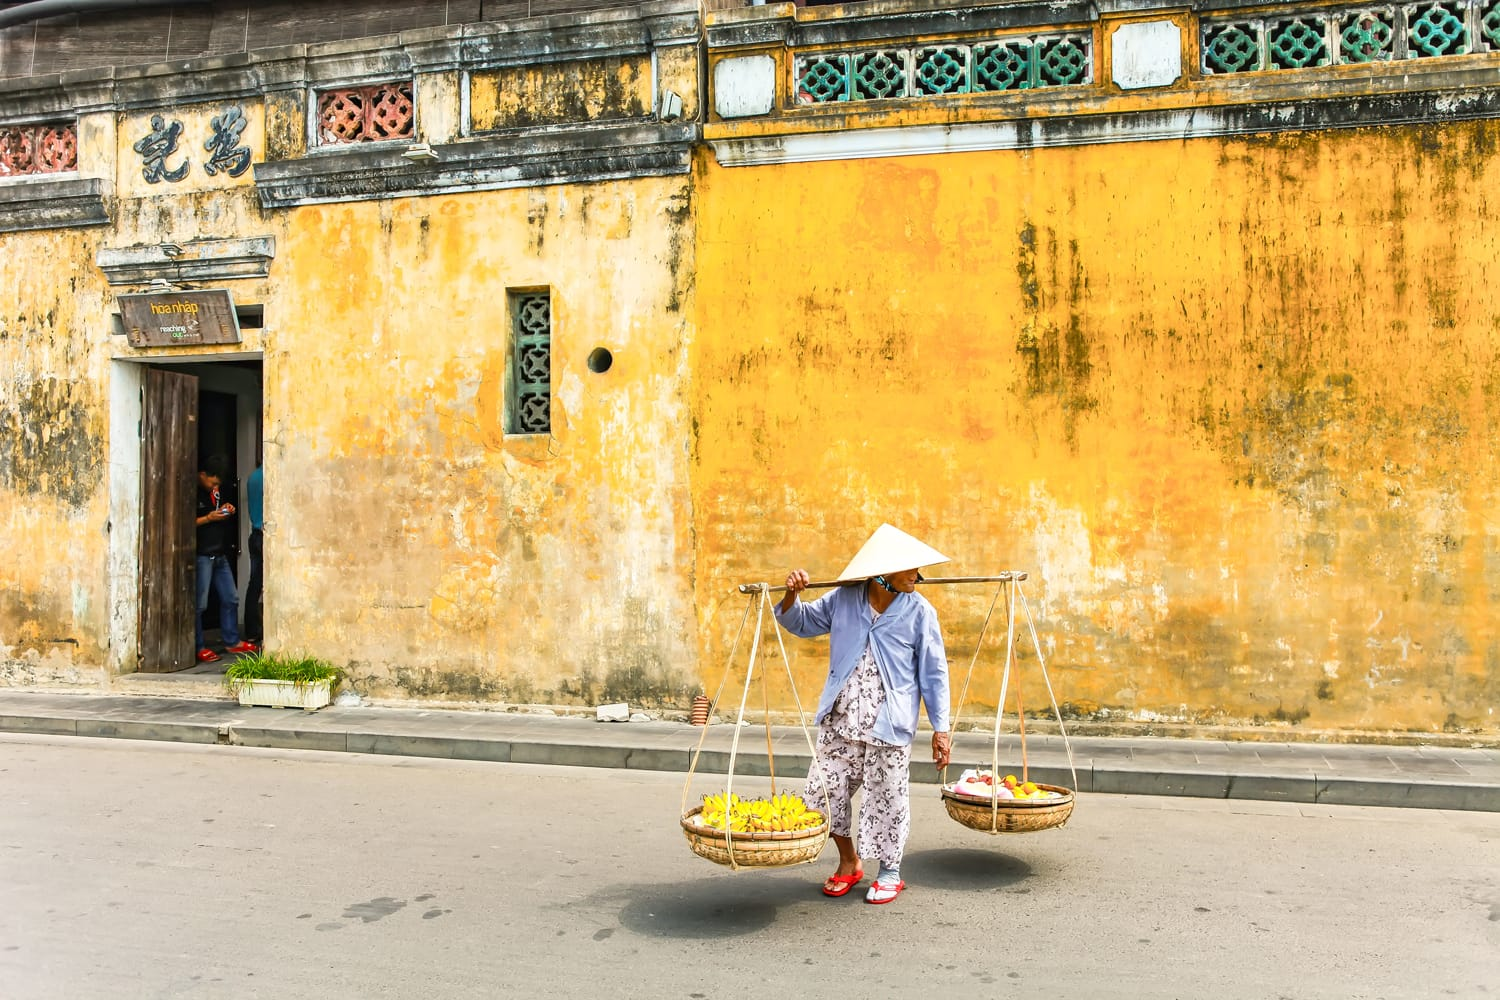 Vietnamese woman street seller In hoi an Vietnam in ancient town Hoi An with view of typical yellow houses